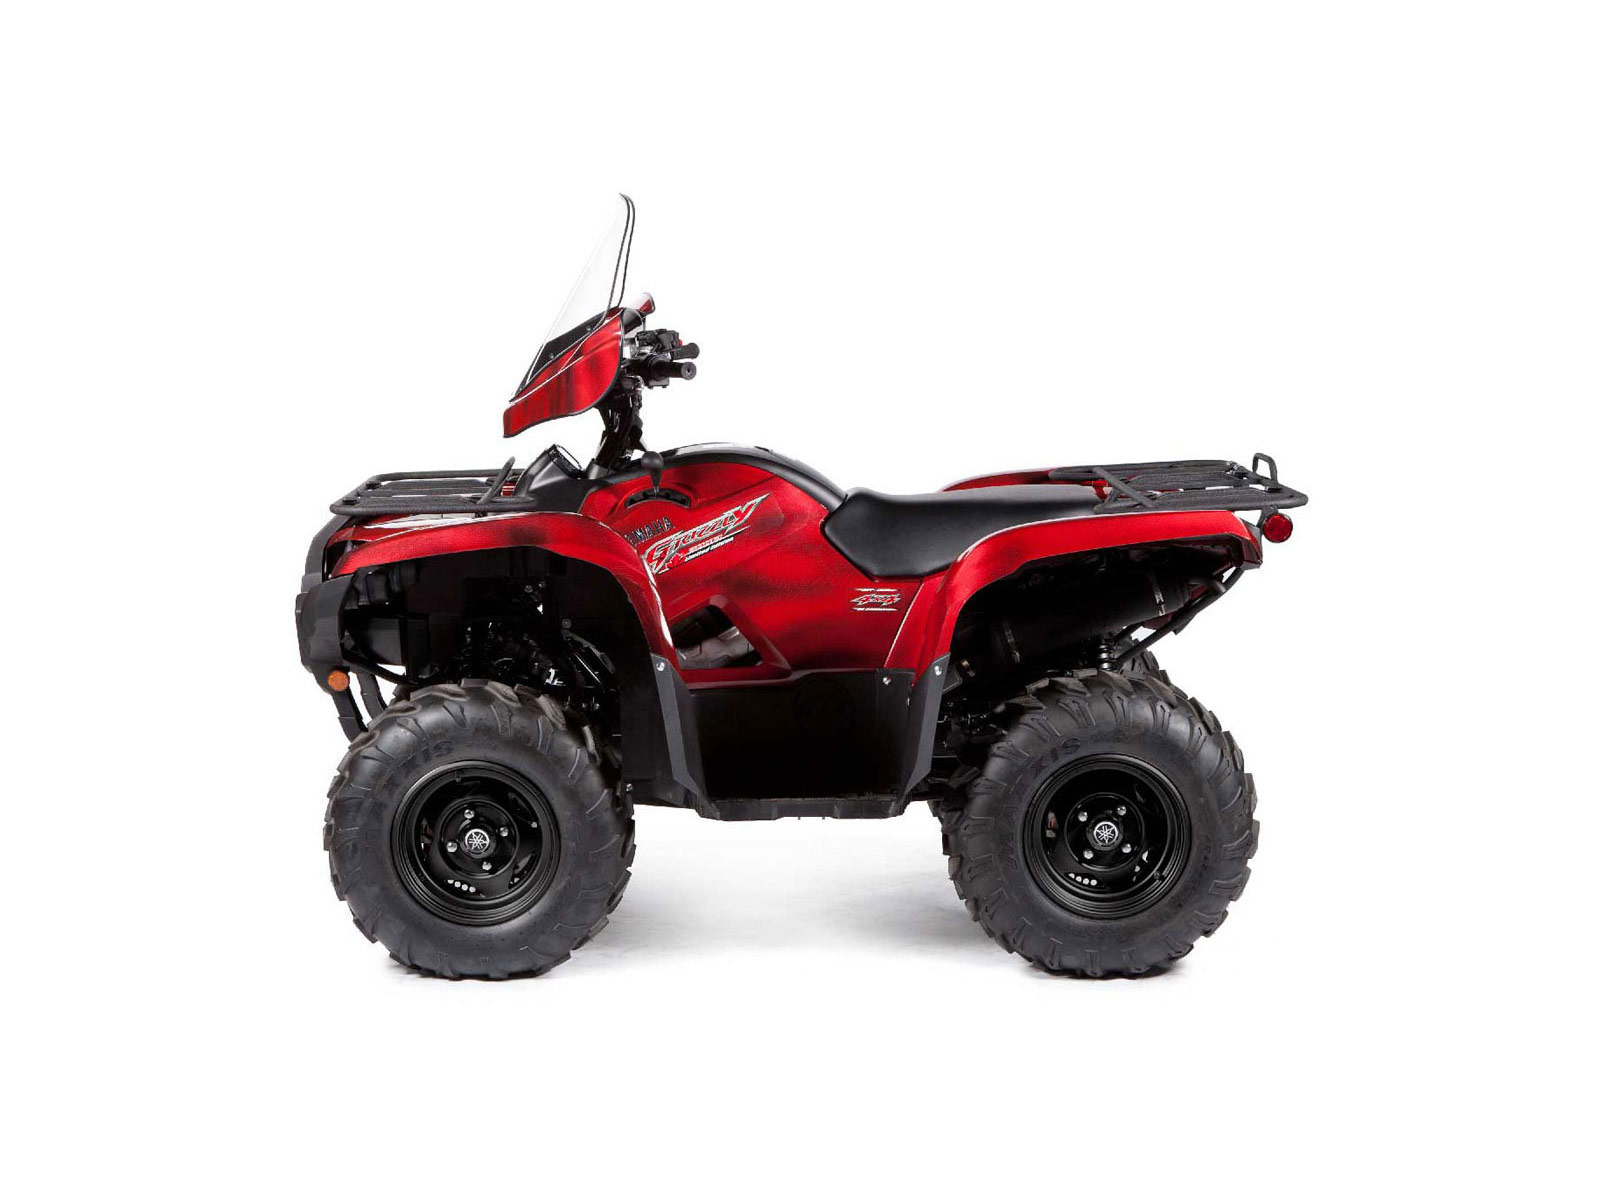 Yamaha electric power steering autos weblog for 2018 yamaha grizzly 700 hp